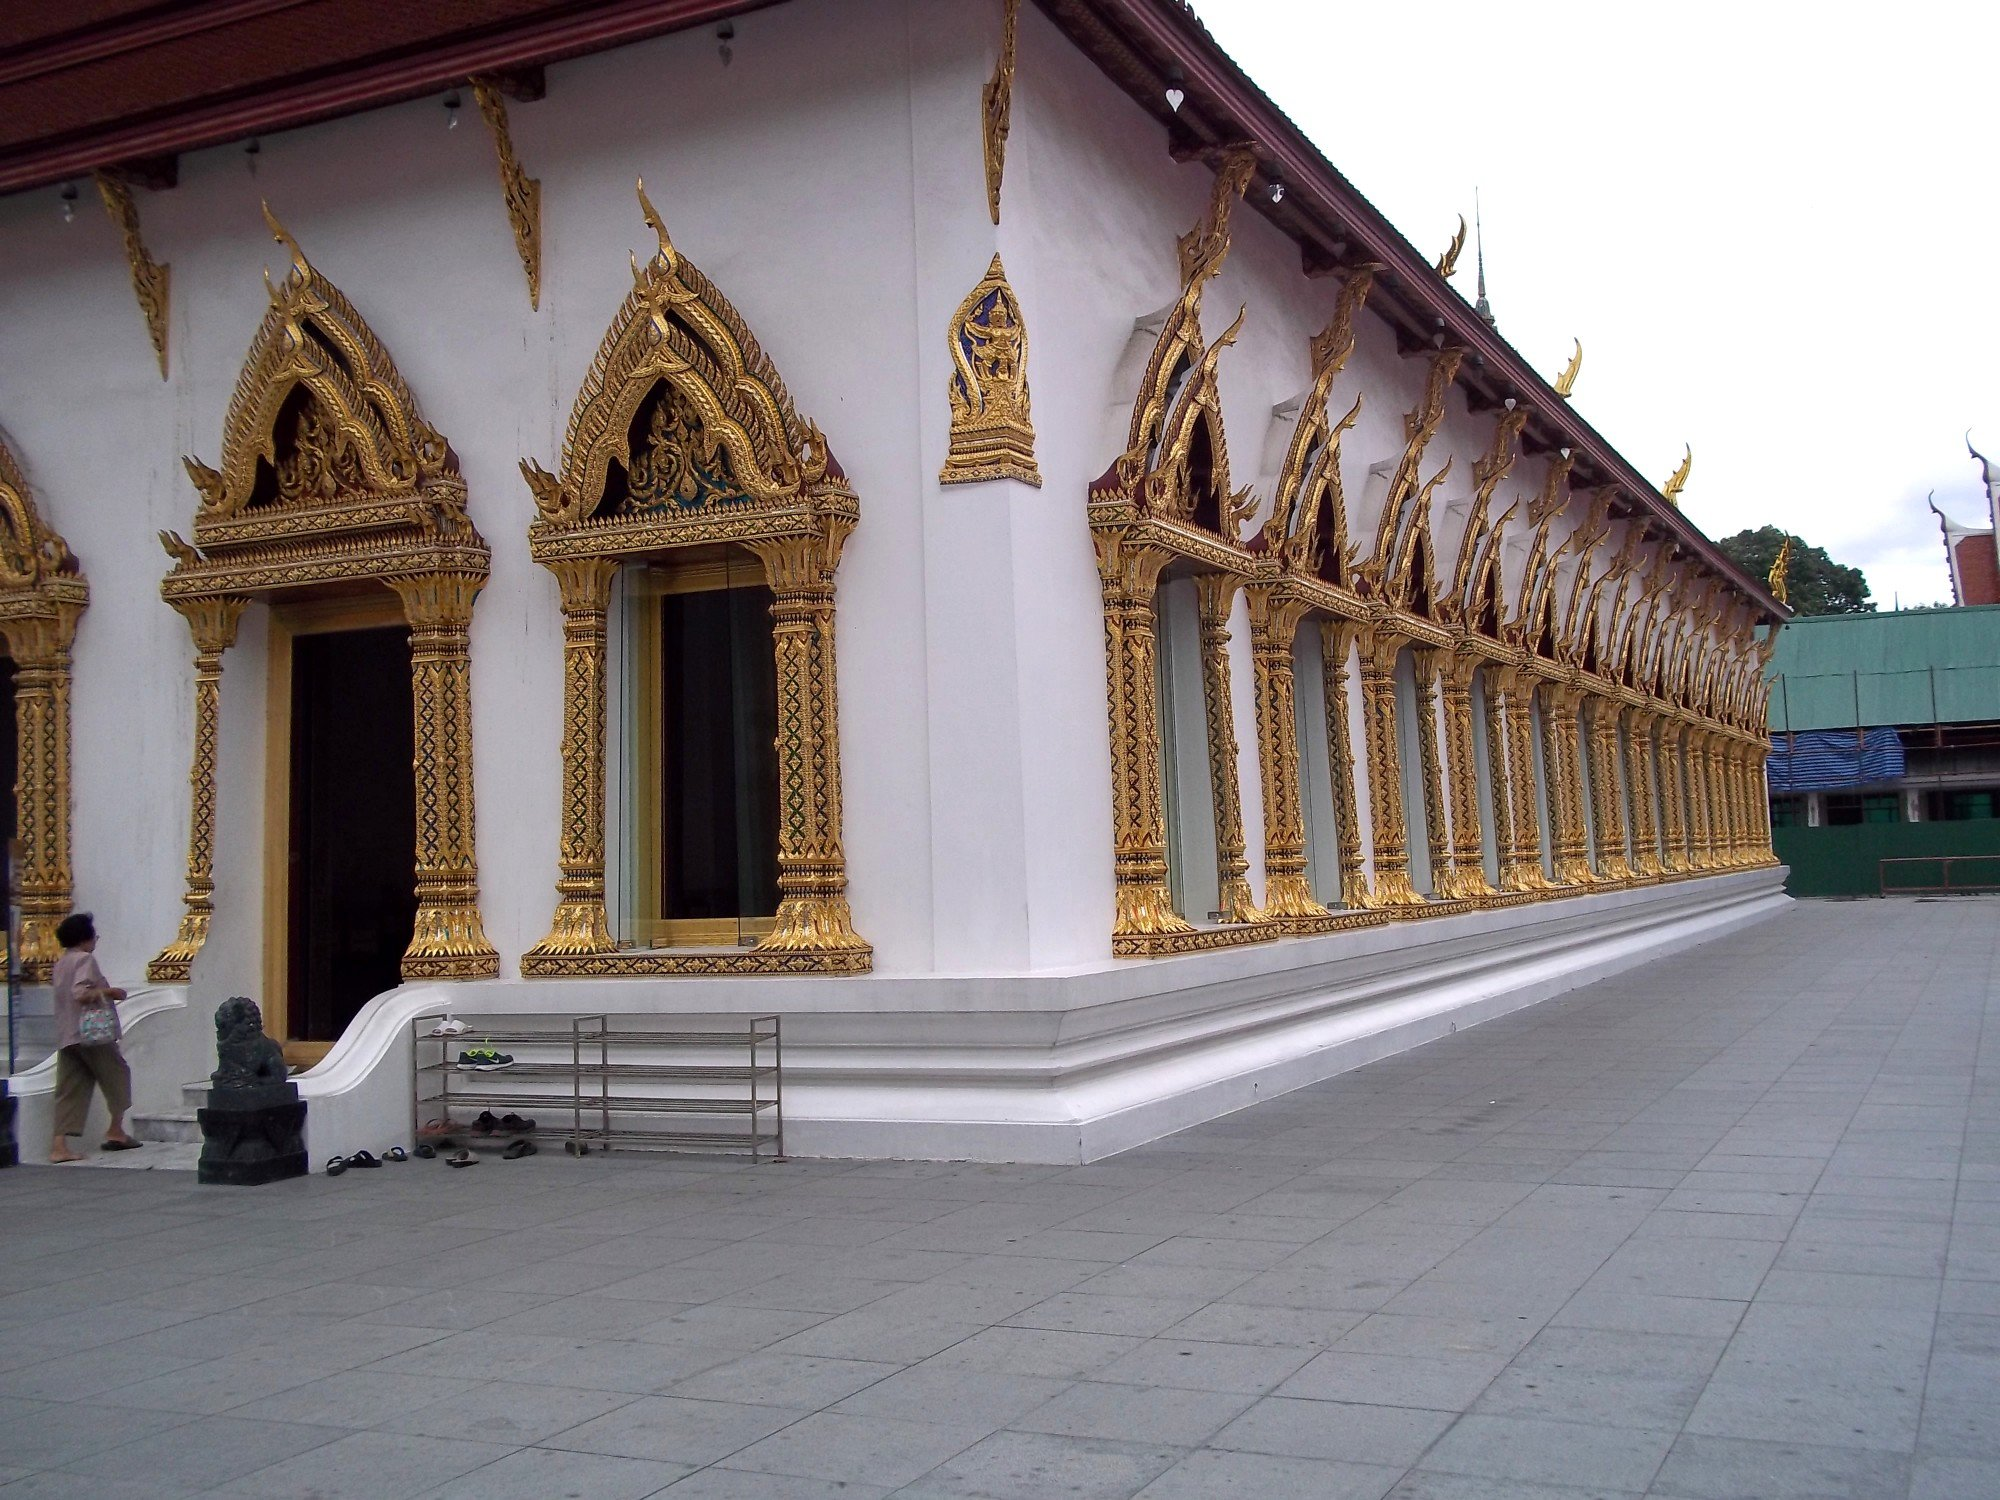 Ordination hall at Wat Chana Songkhram